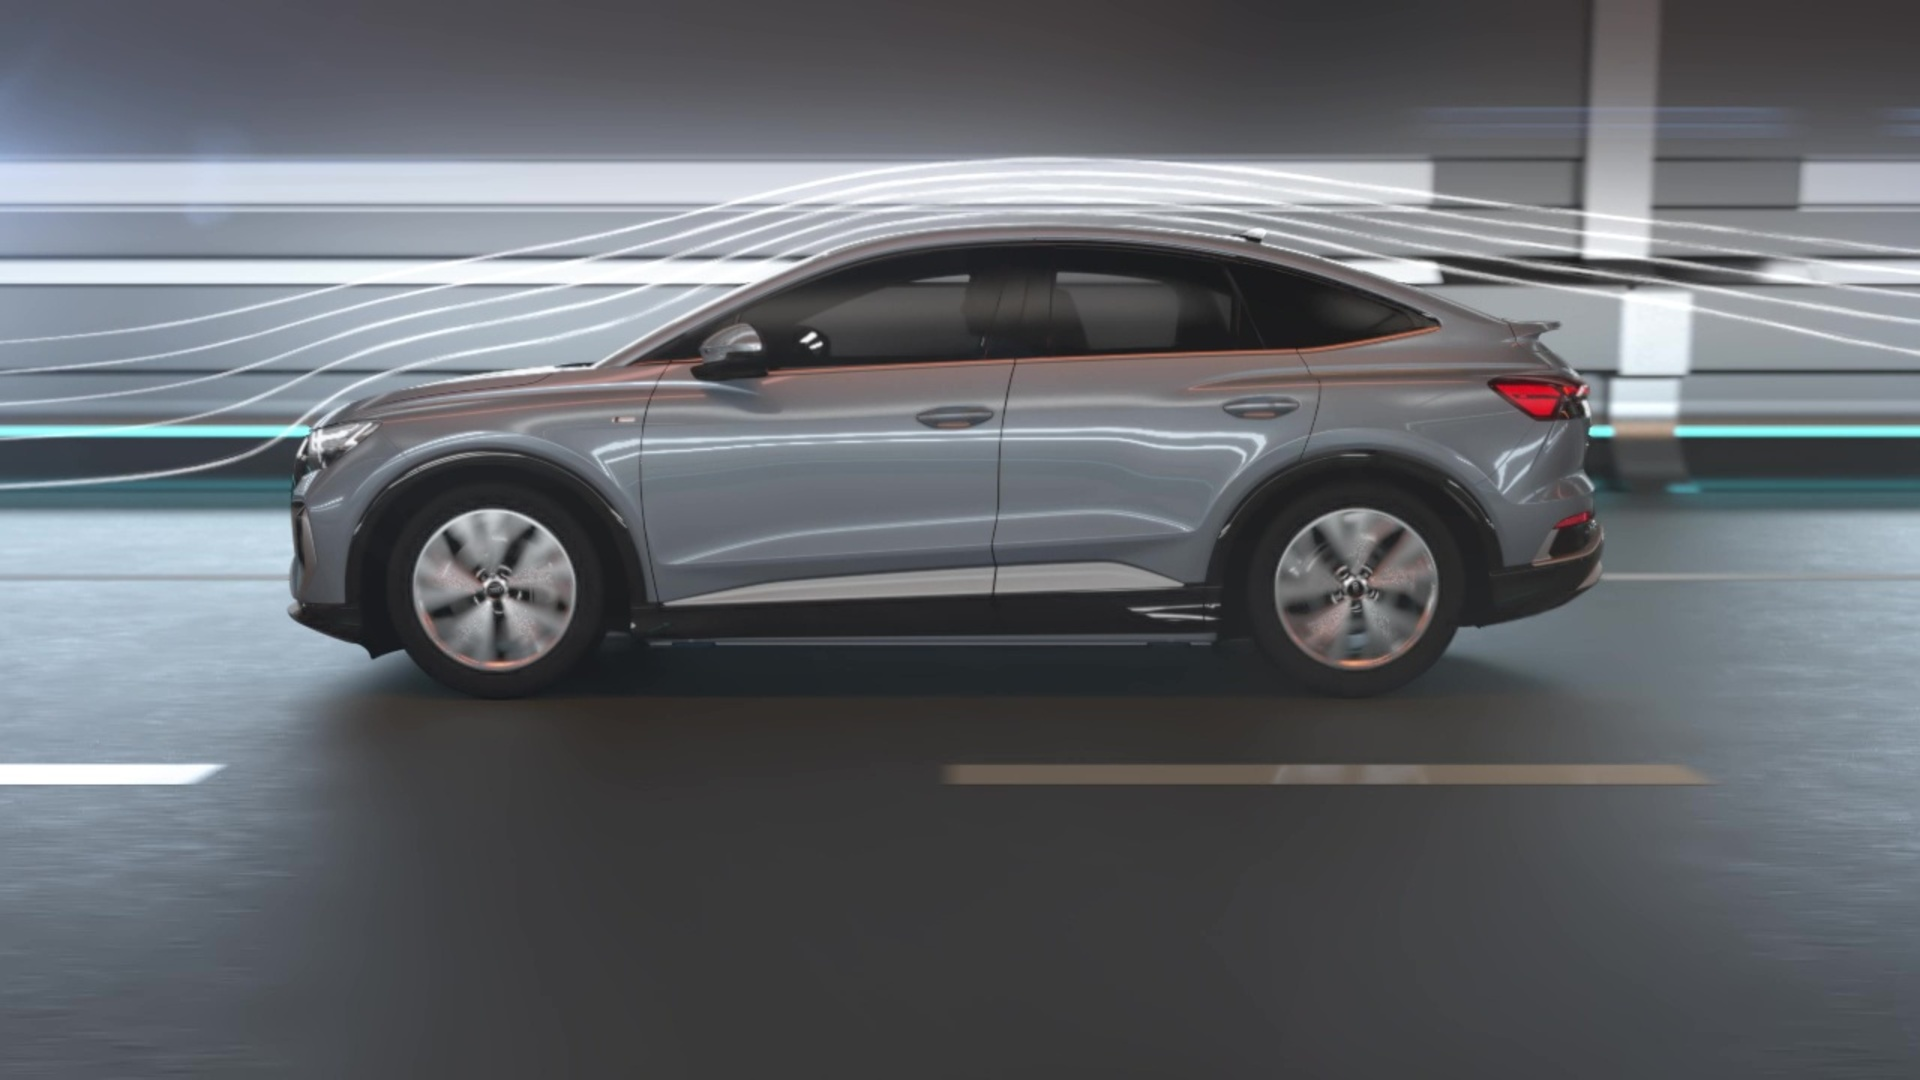 Animation: Aerodynamics of the Audi Q4 Sportback e-tron